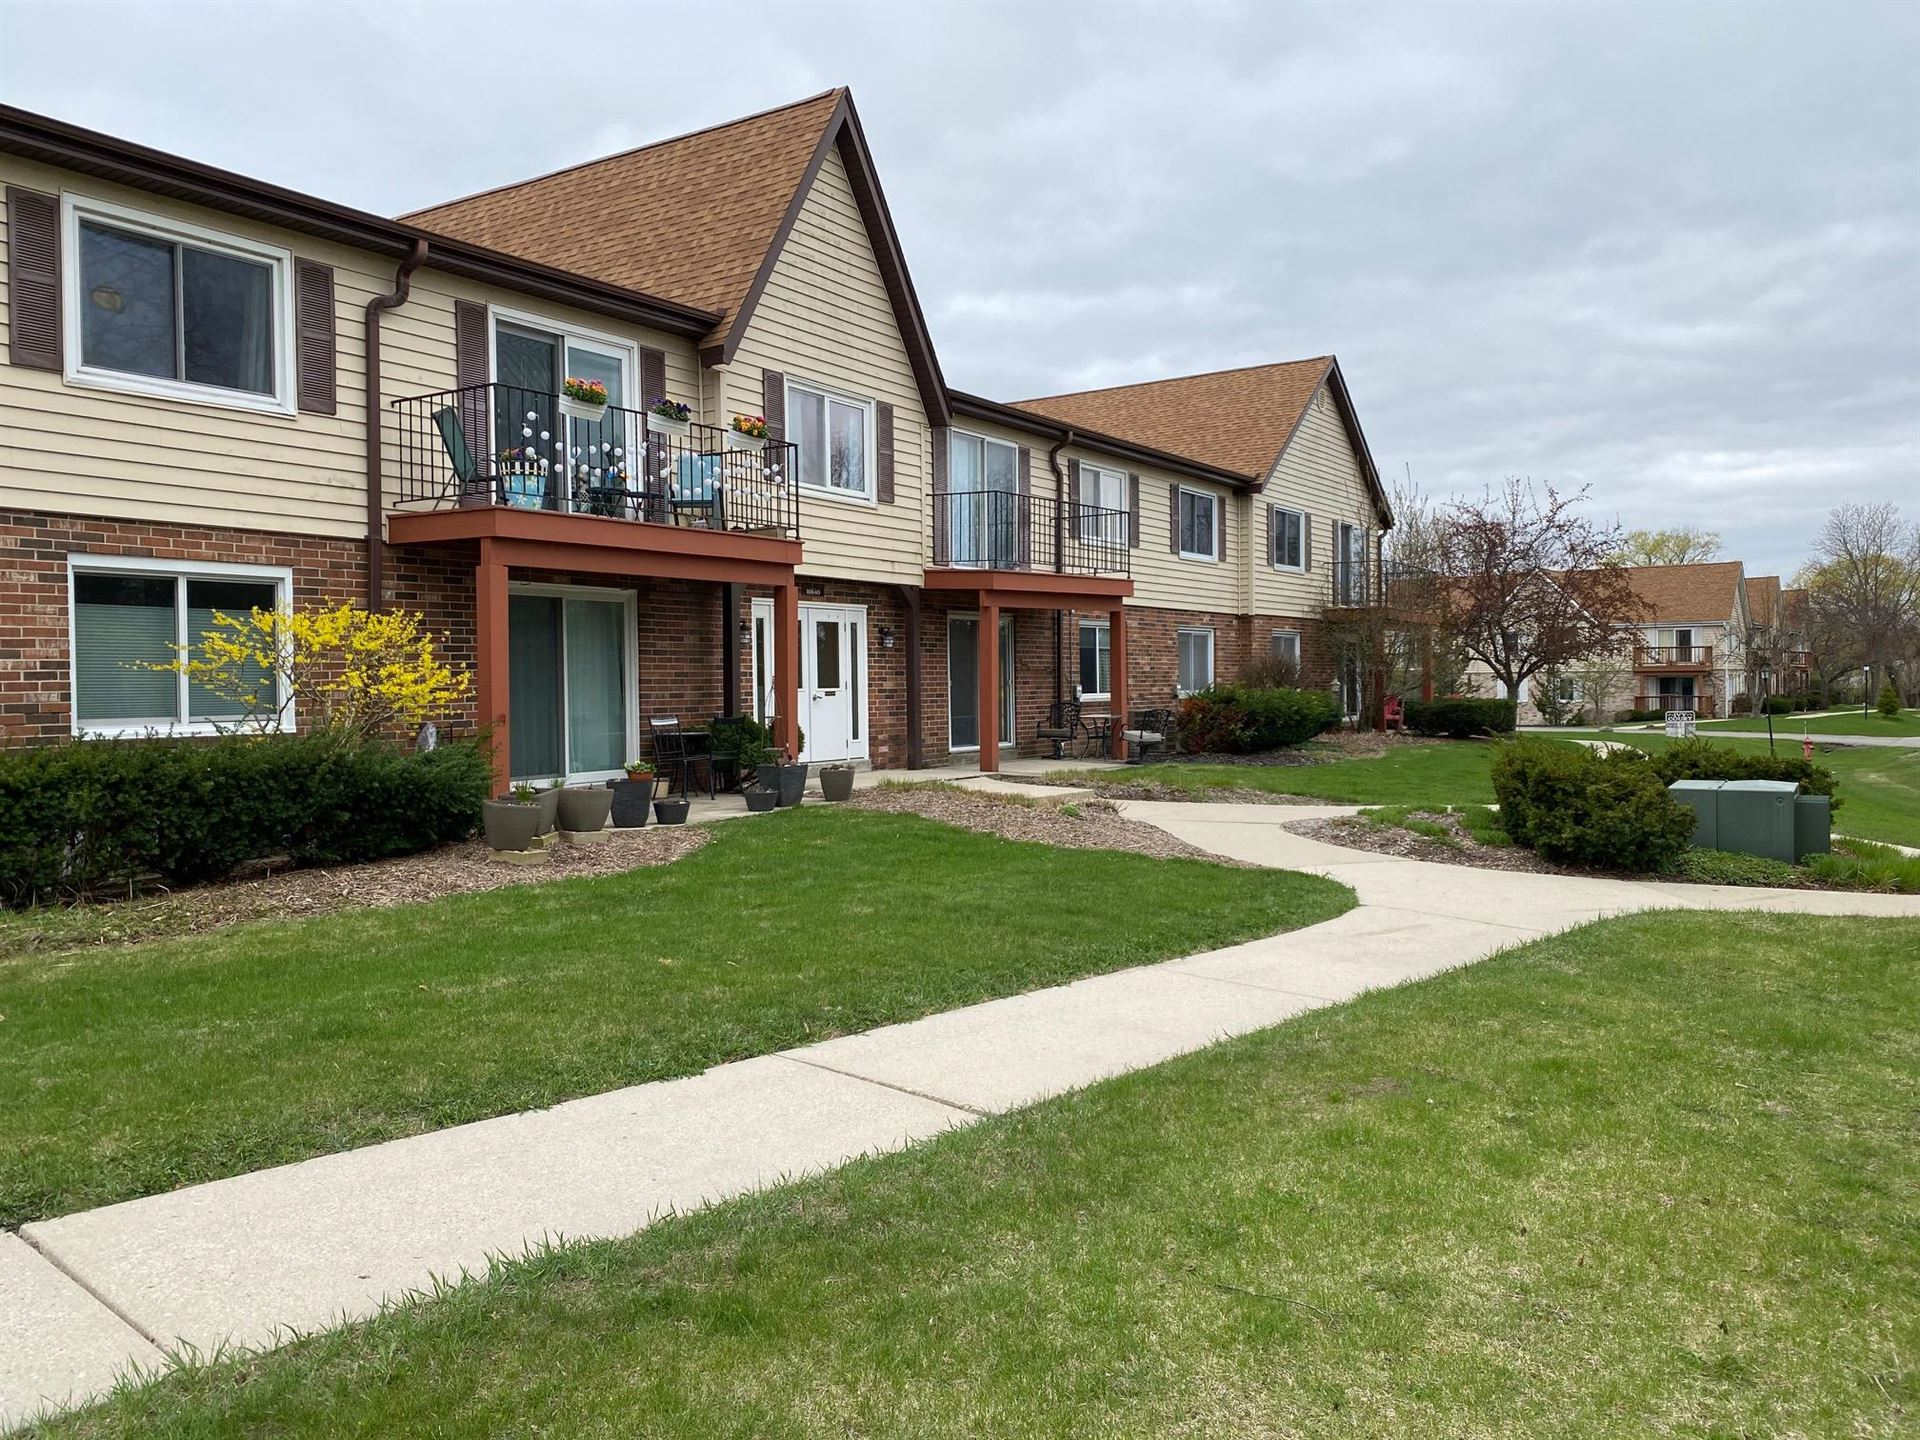 10640 N Ivy Ct #13, Mequon, WI 53092 - #: 1735275